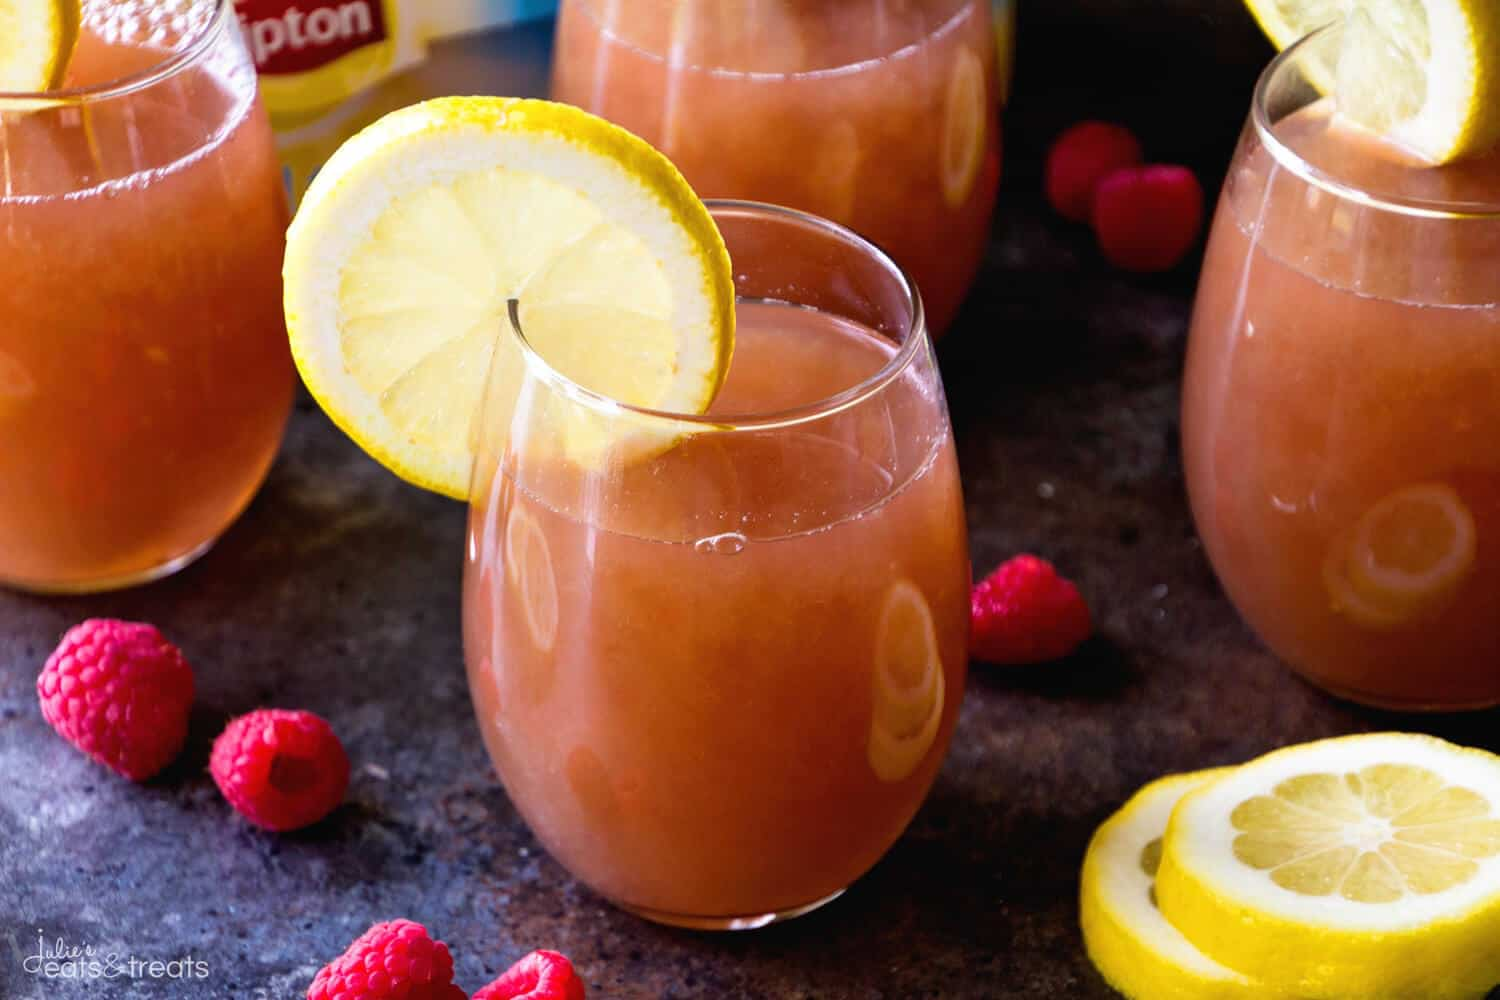 Raspberry Lemonade Iced Tea ~ Easy, Delicious and Refreshing Iced Tea Recipe that is Flavored with Raspberries and Lemonade!